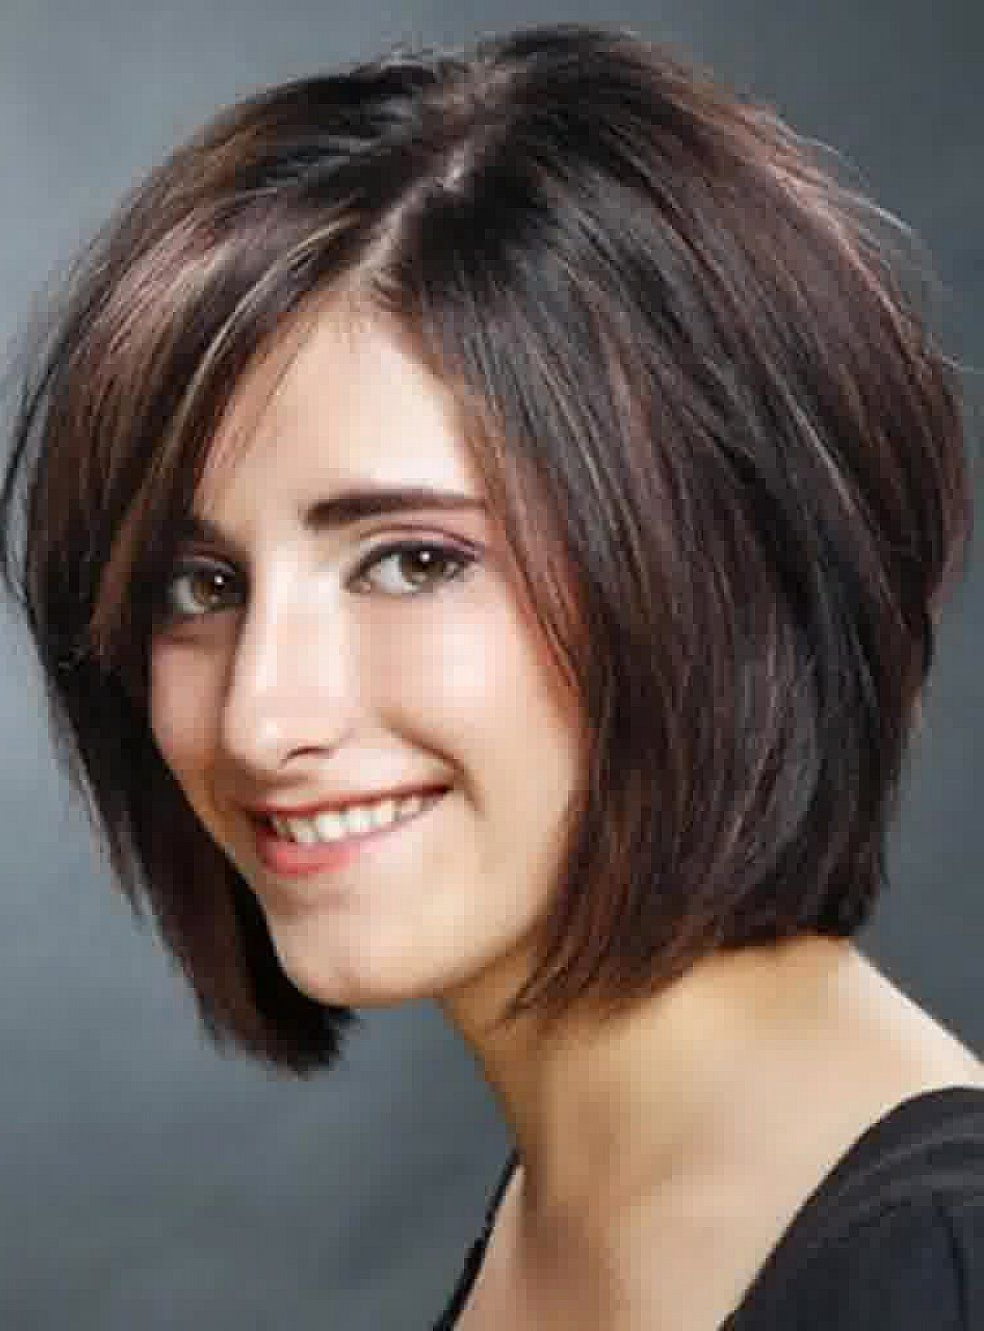 The Creation Of Short Hairstyles For Square Faces: Very Short Pertaining To Short Haircuts For Square Face (View 6 of 25)